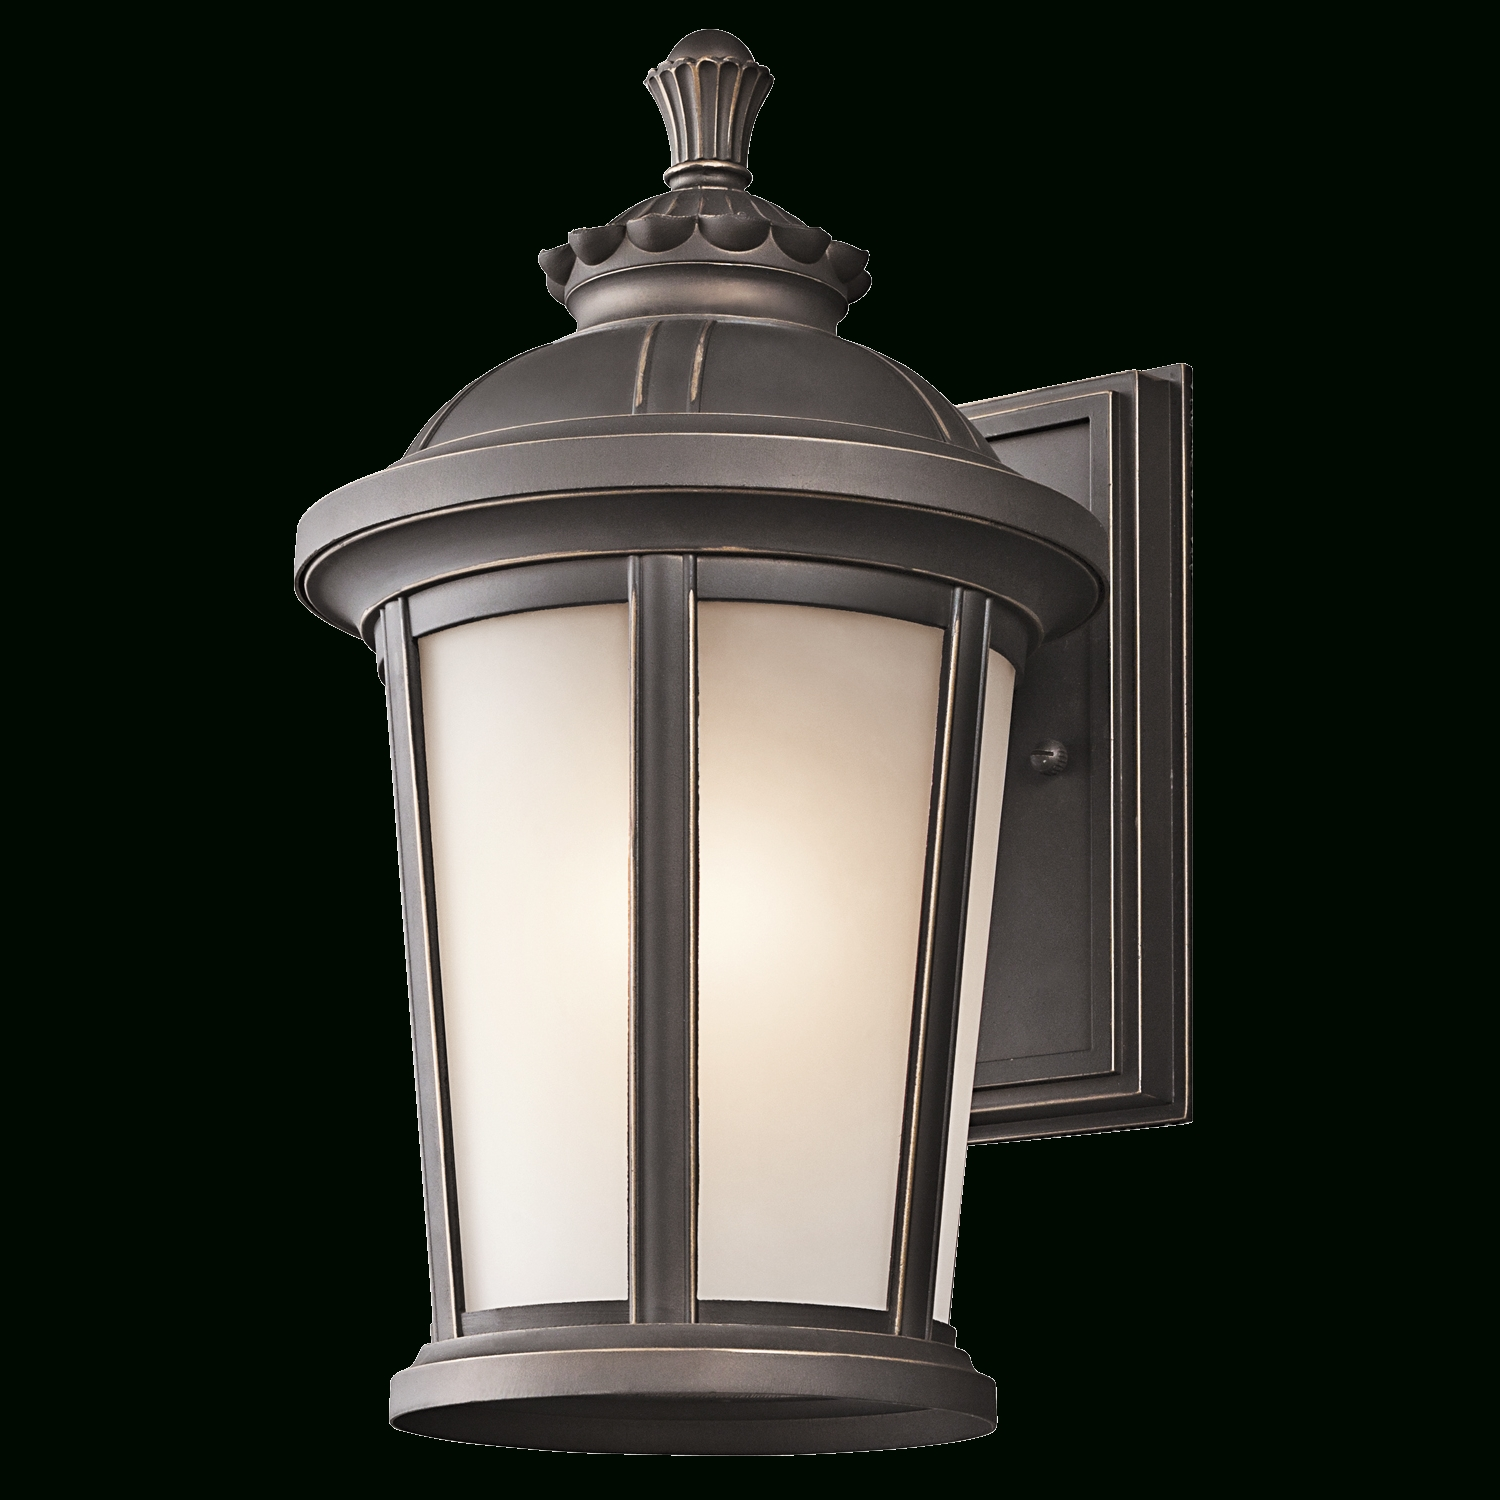 Ralston Collection 1 Light Outdoor Wall Lamp In Rubbed Bronze Pertaining To Most Recent Kichler Lighting Outdoor Wall Lanterns (View 17 of 20)